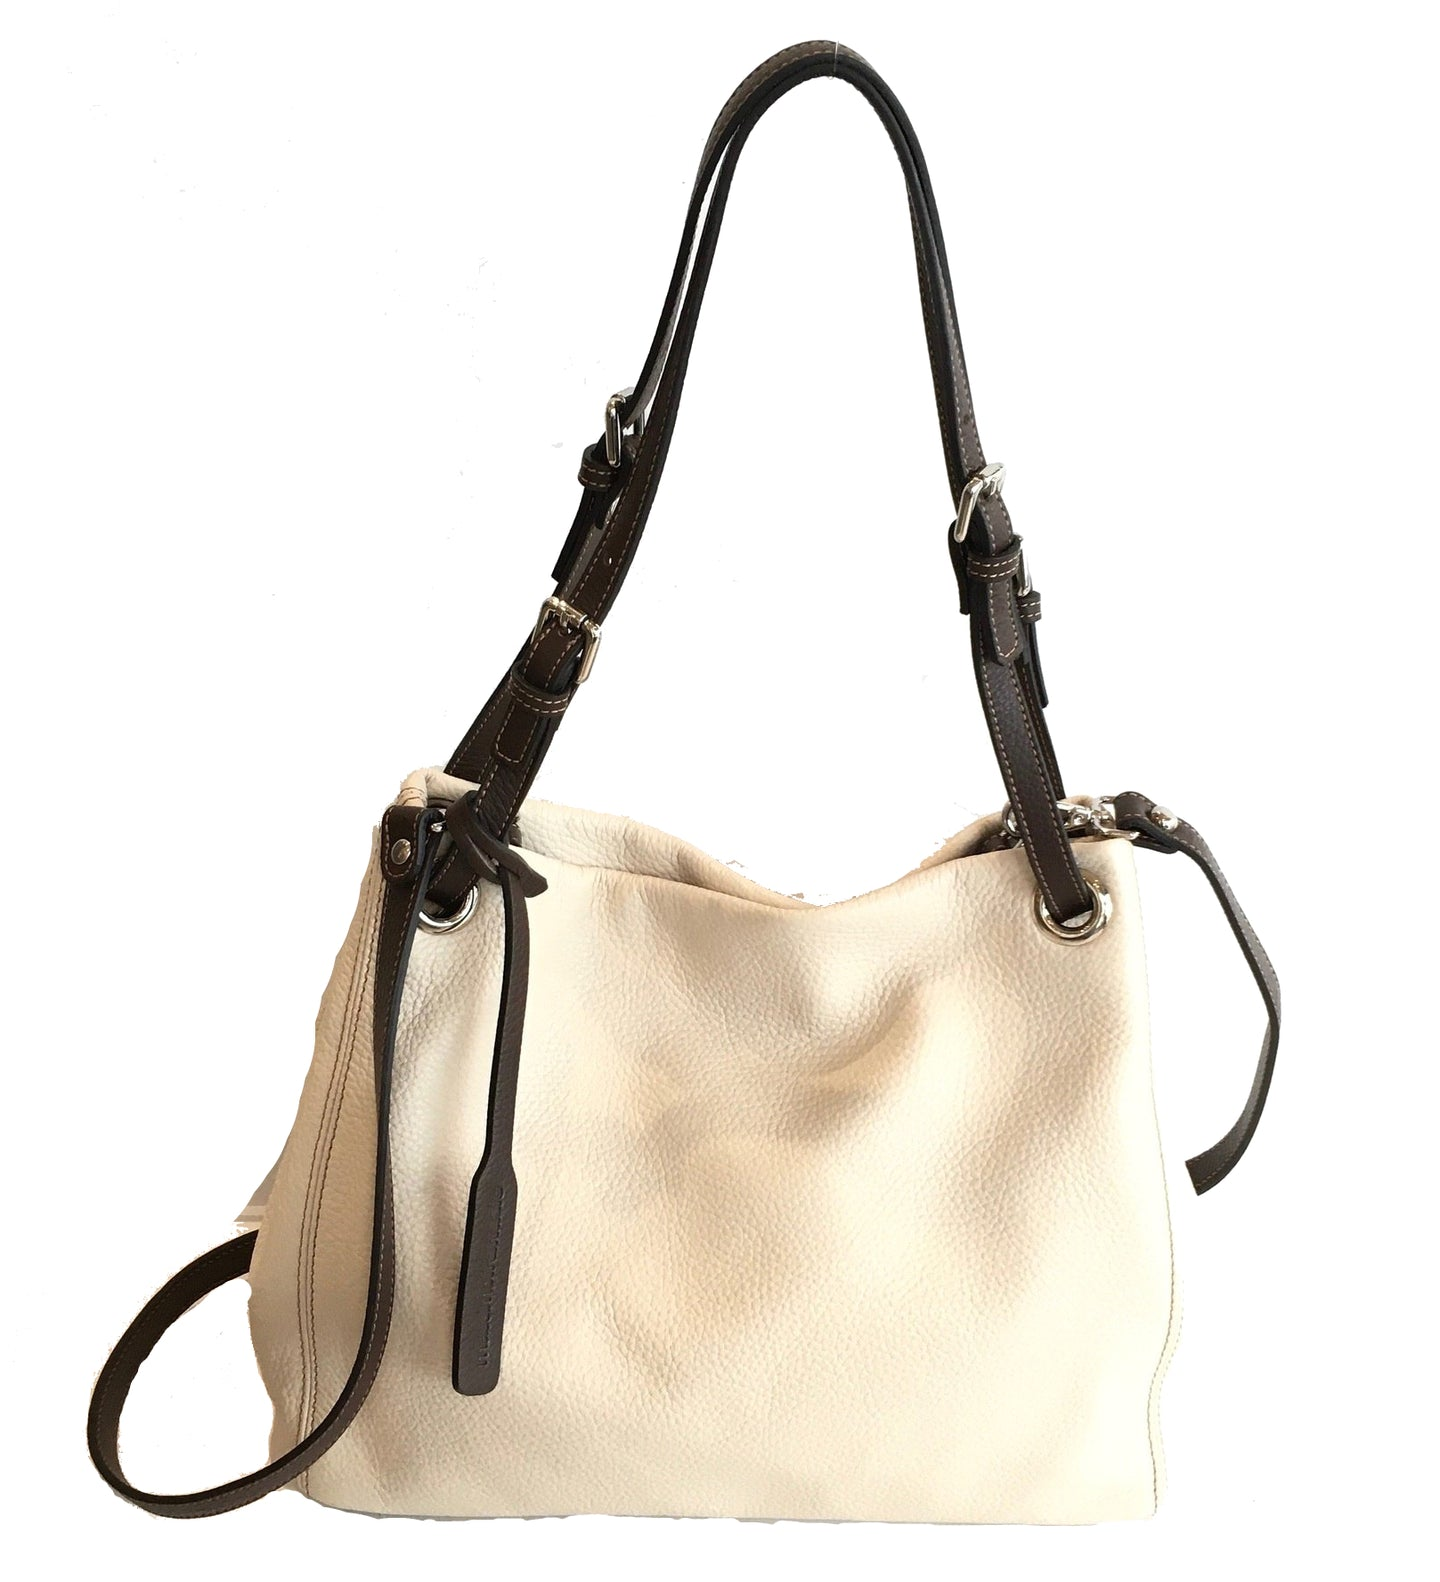 cream leather shouldre bag with brown handles